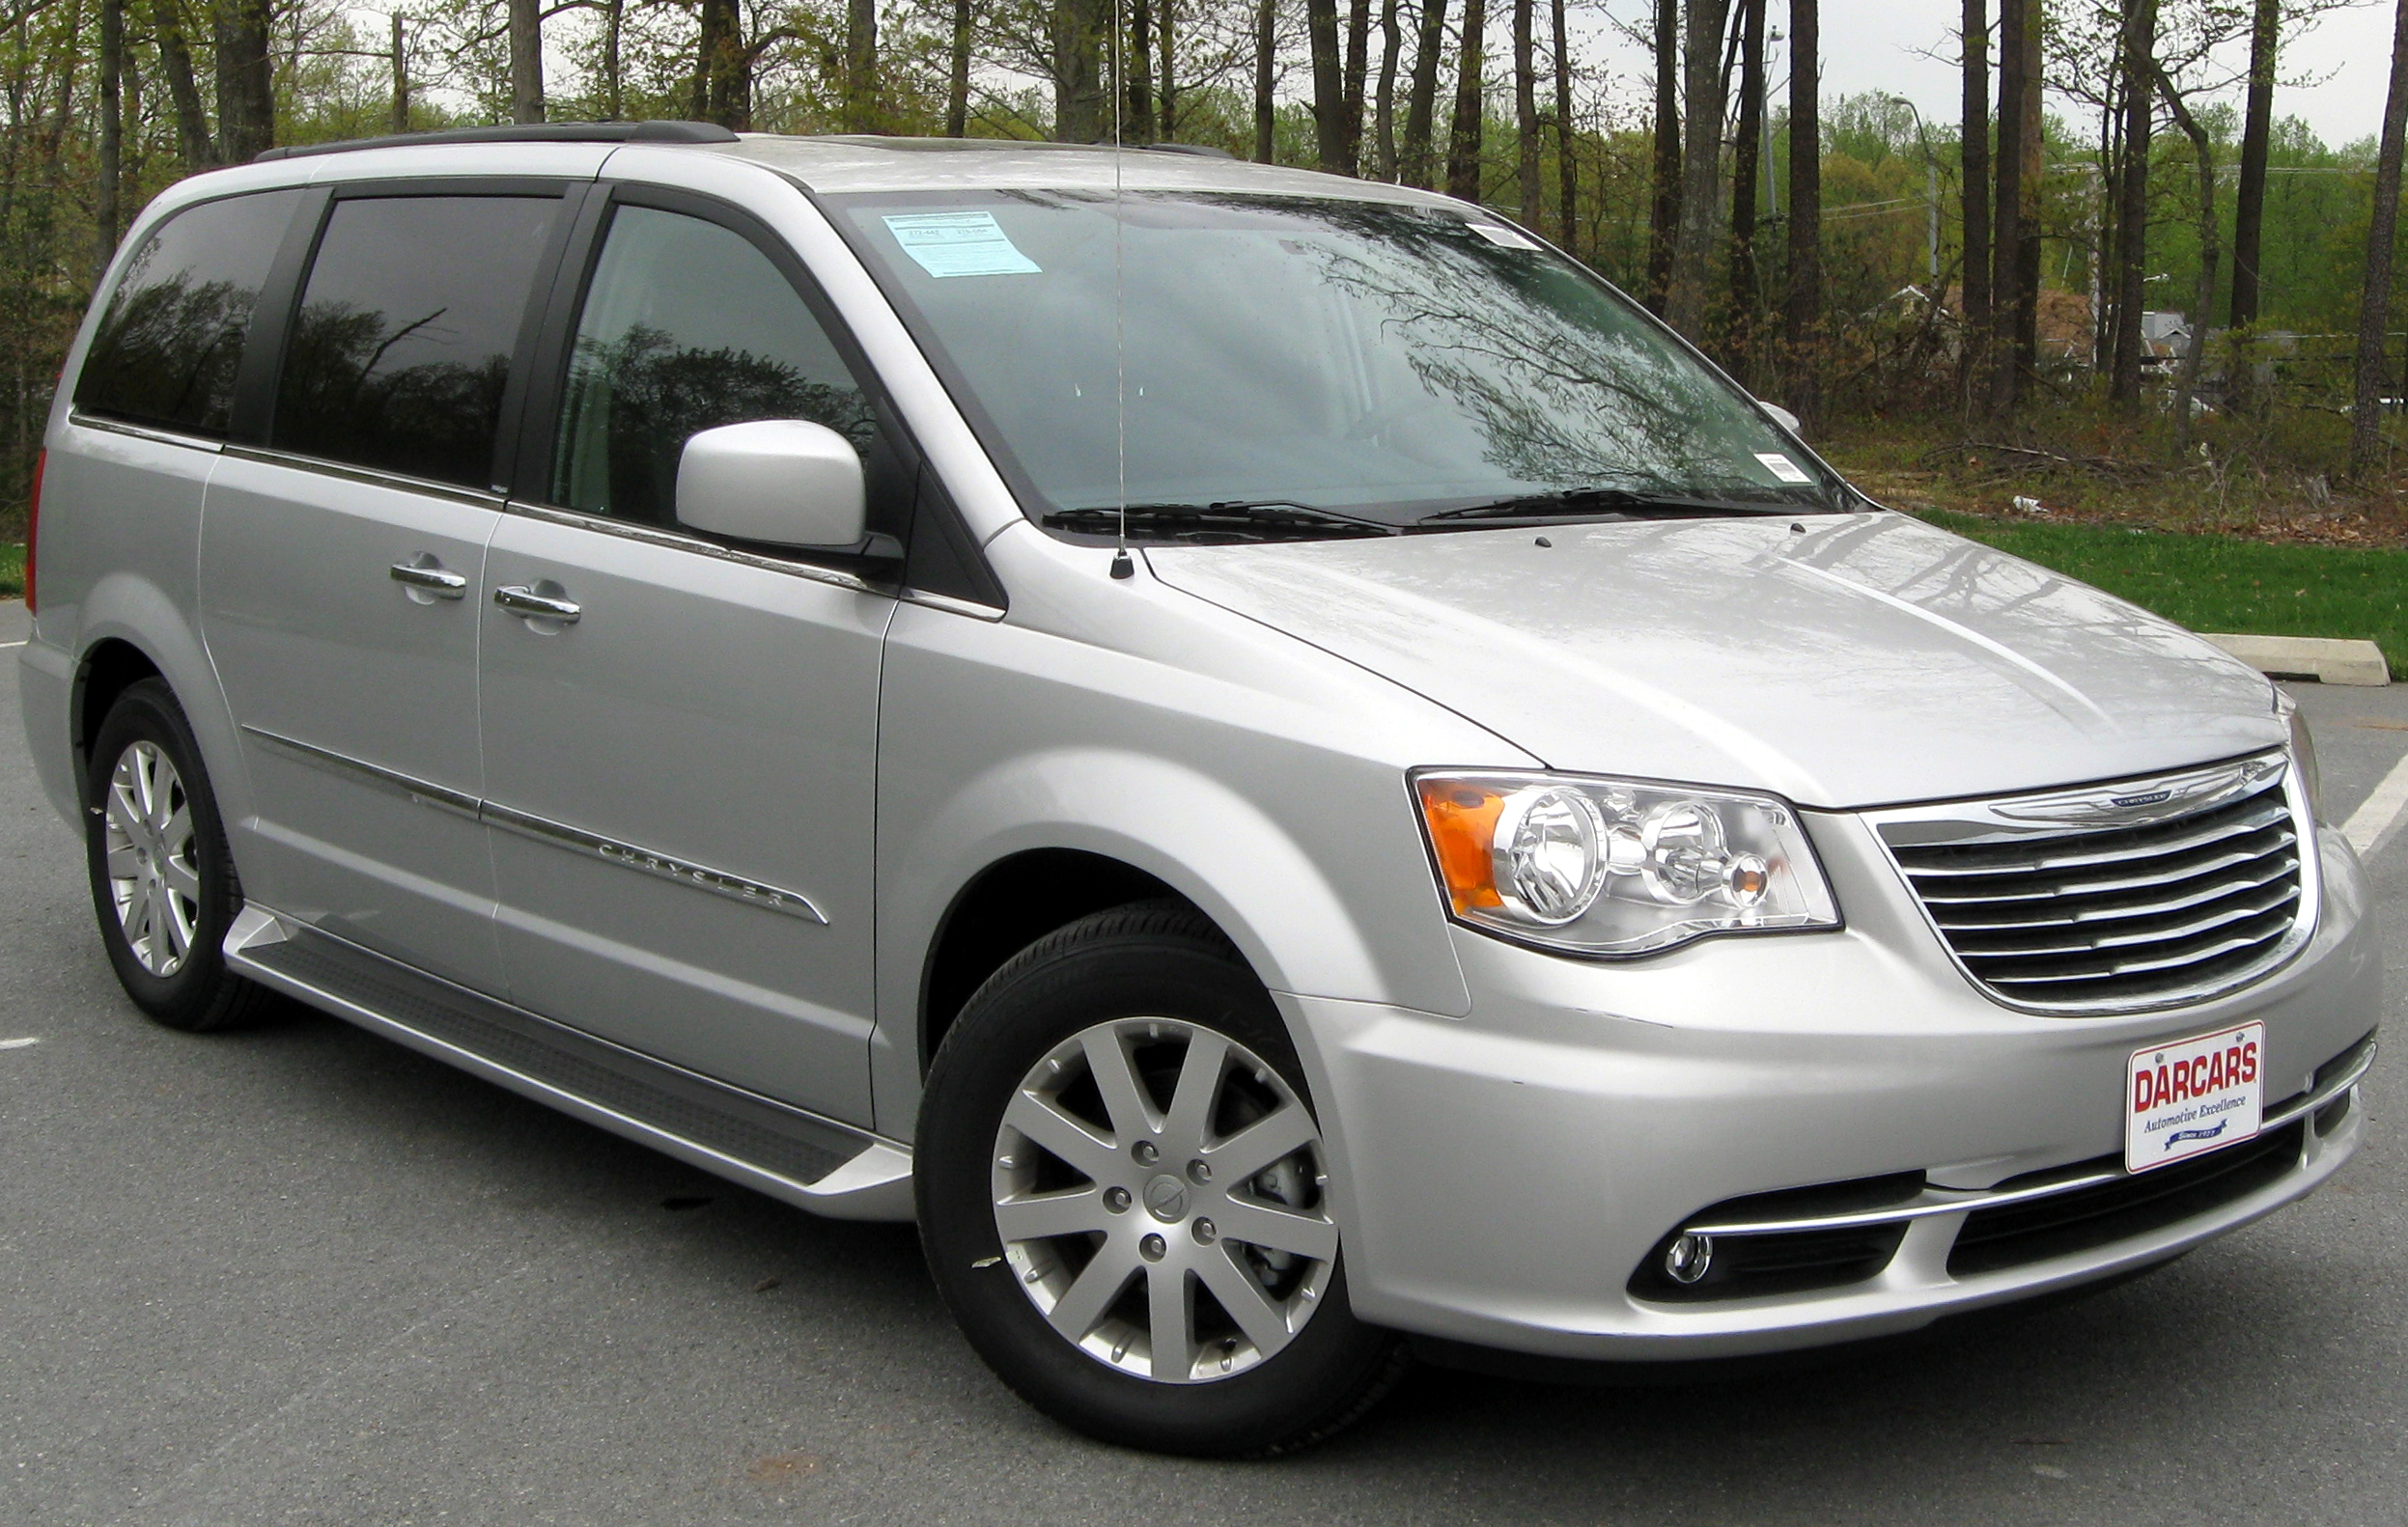 Description 2011 Chrysler Town & Country Touring - L -- 04-22-2011.jpg